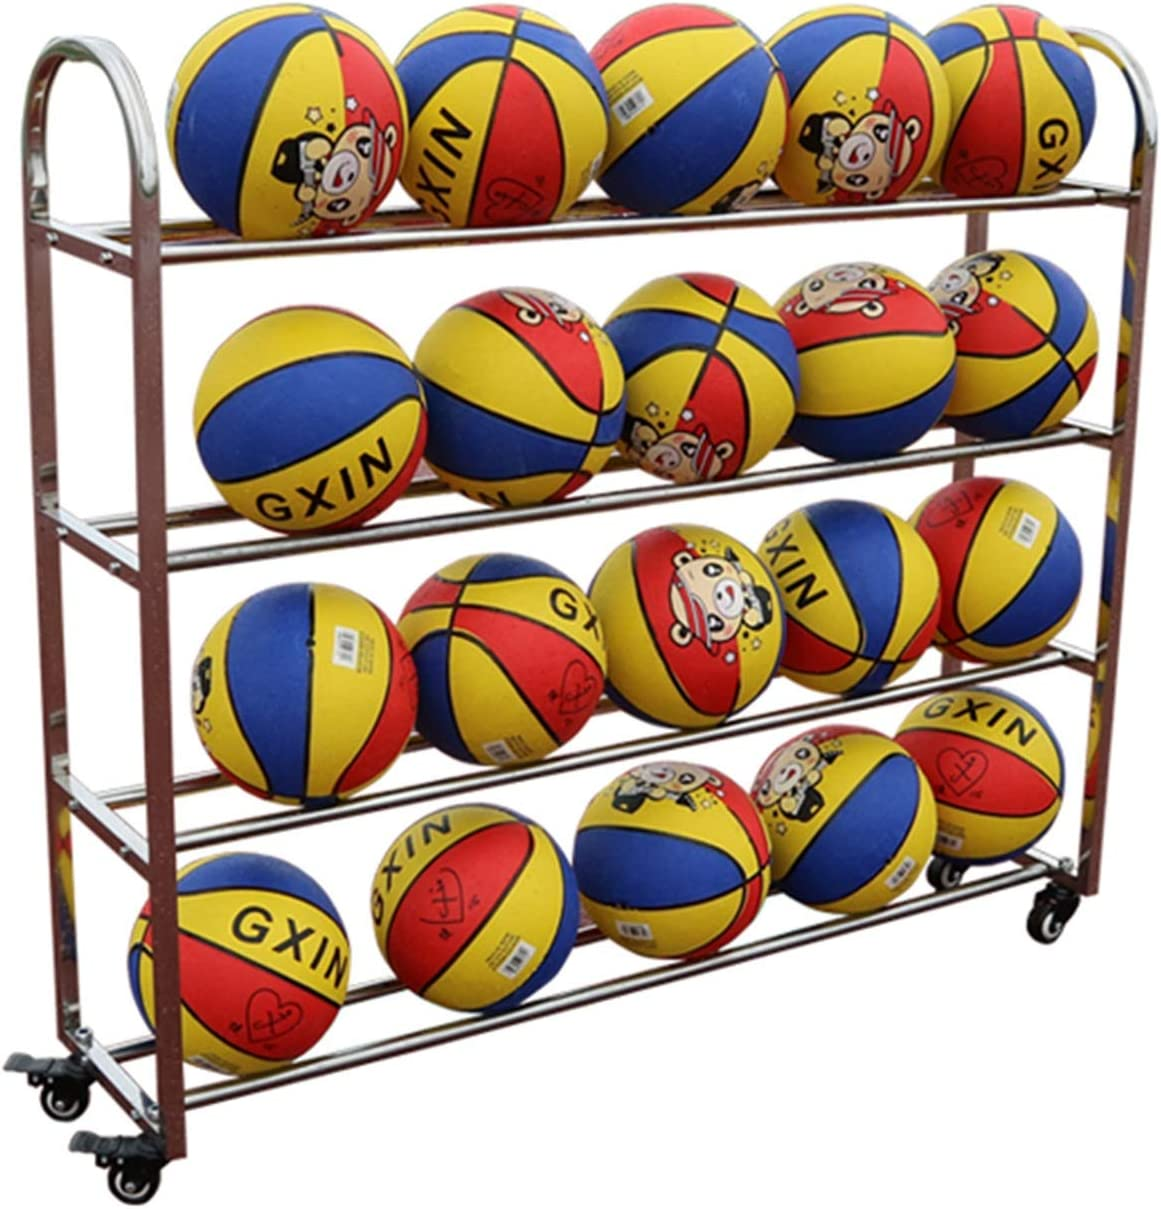 LLFF 20balls OFFicial site Super beauty product restock quality top! Basketball Rack Rolling Storage Sports Equipment C